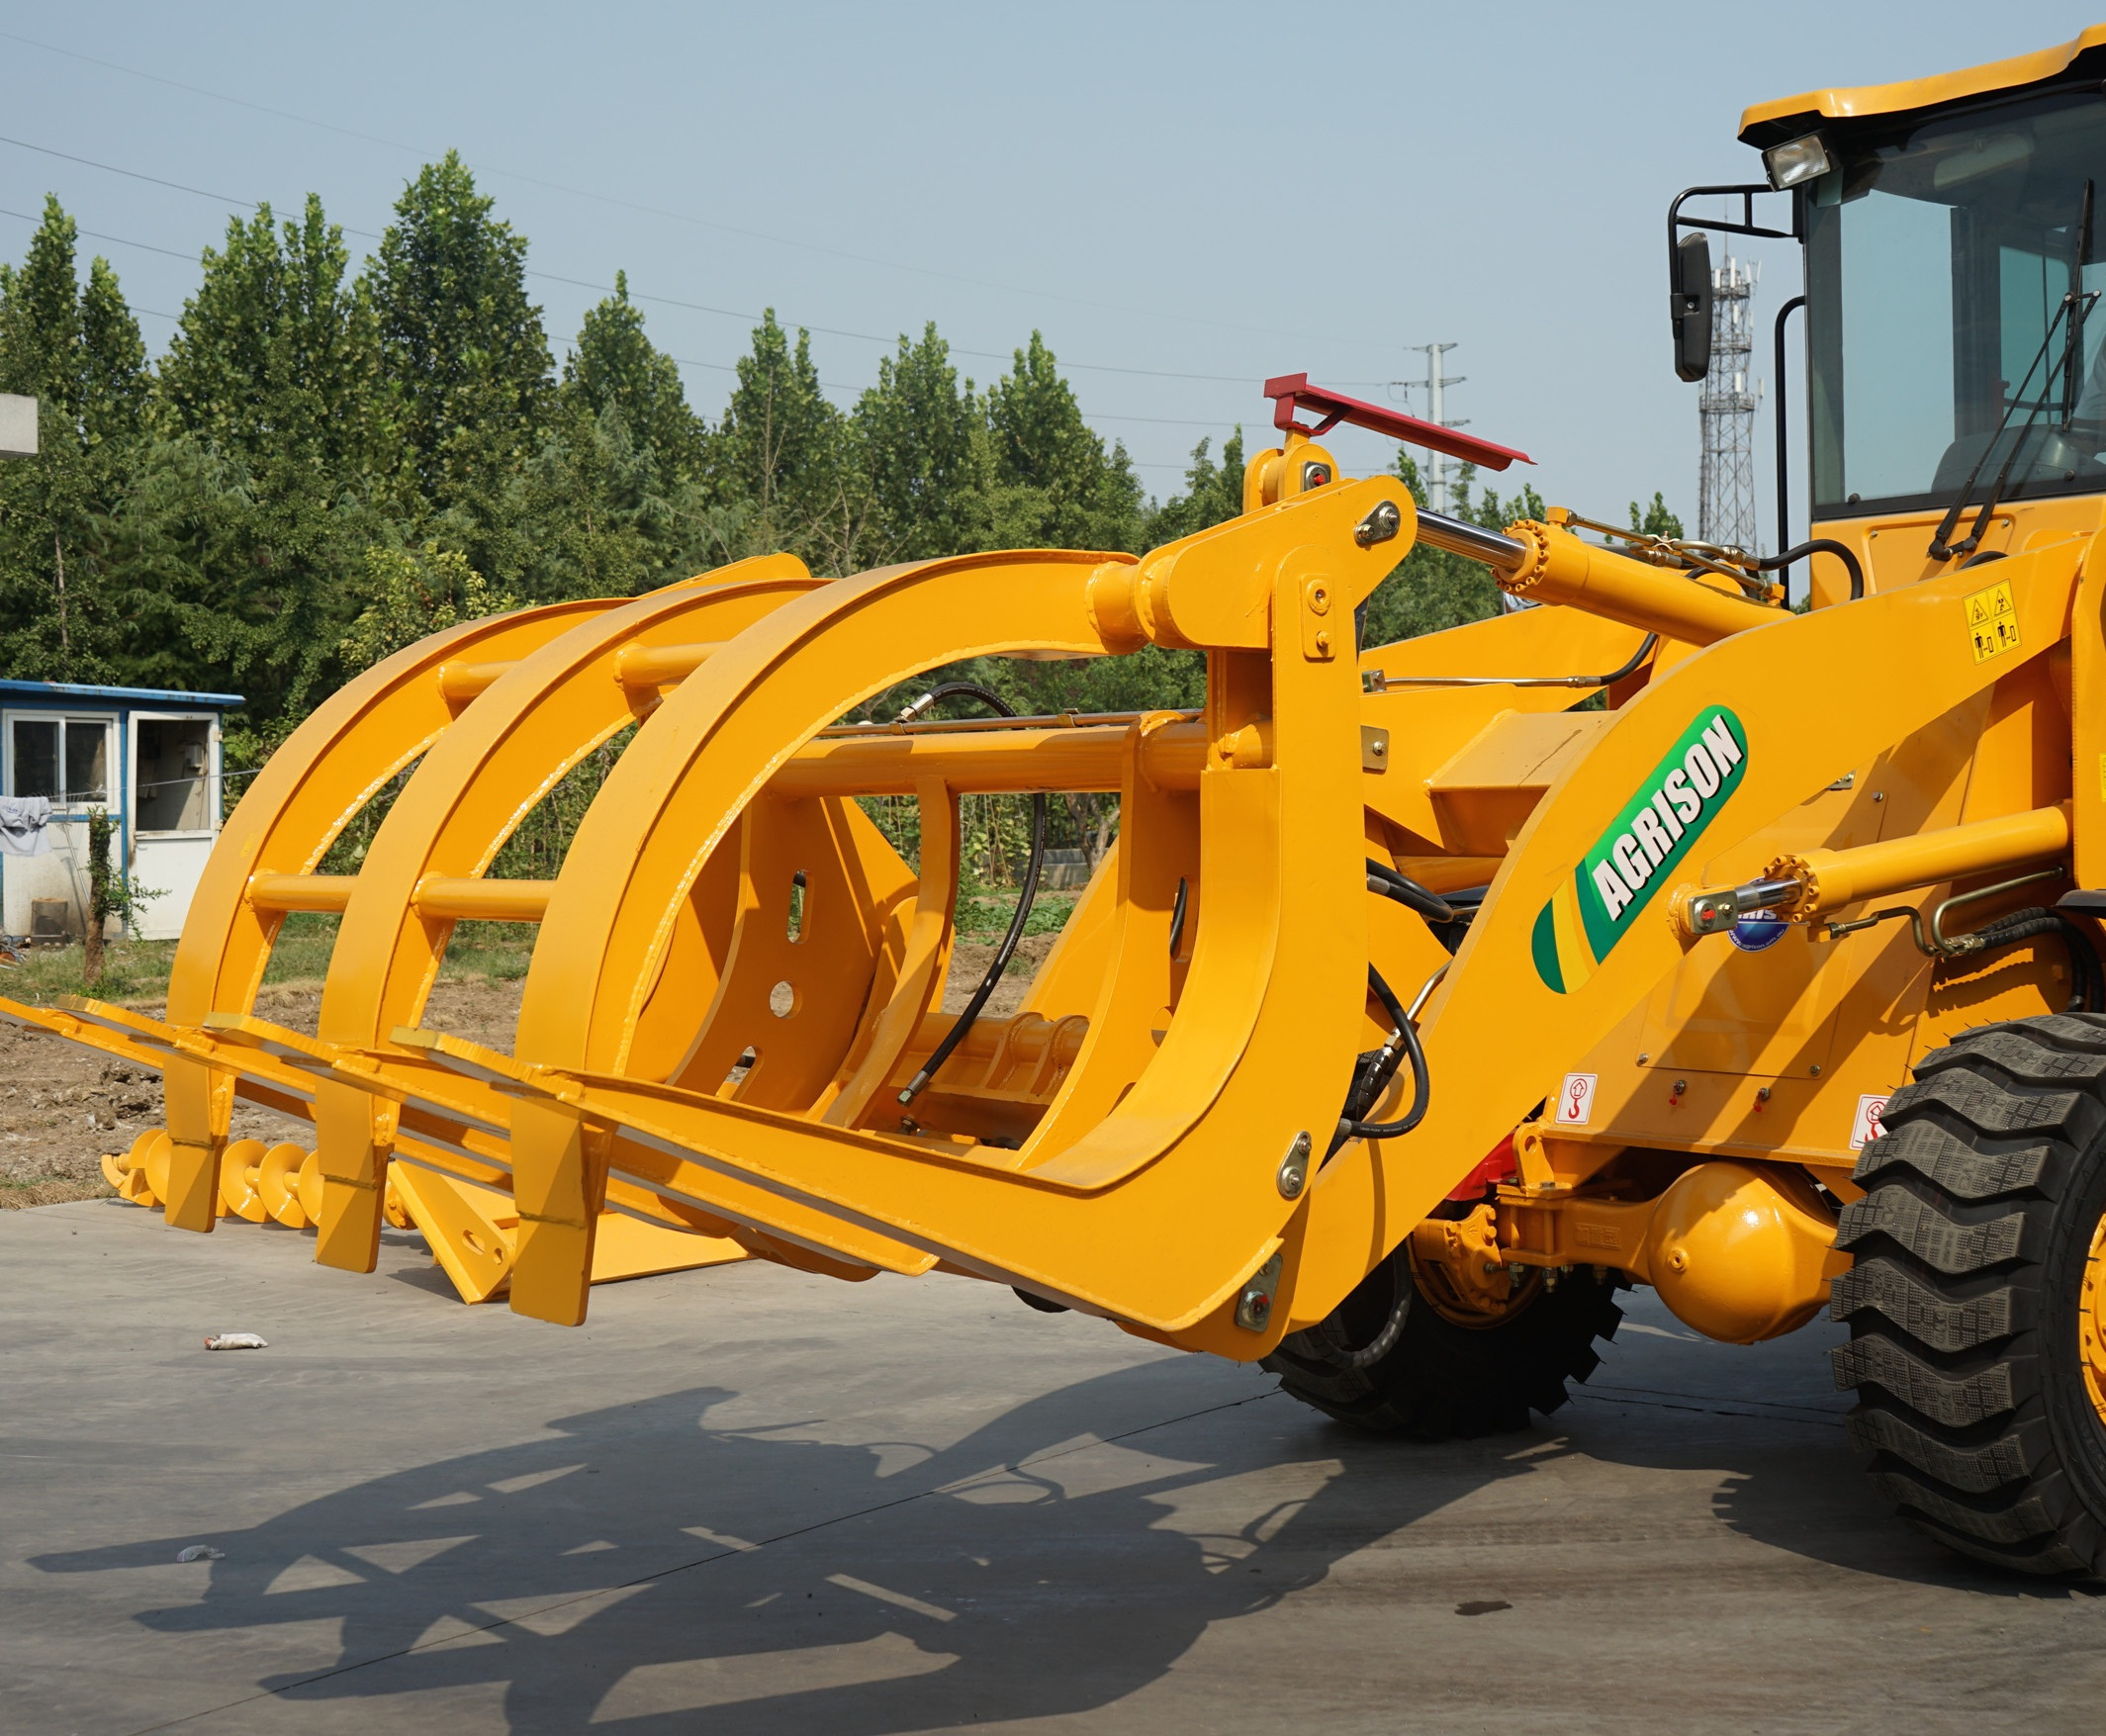 Agrison Wheel Loaders, Agrison Laoders, wheel loaders melboune